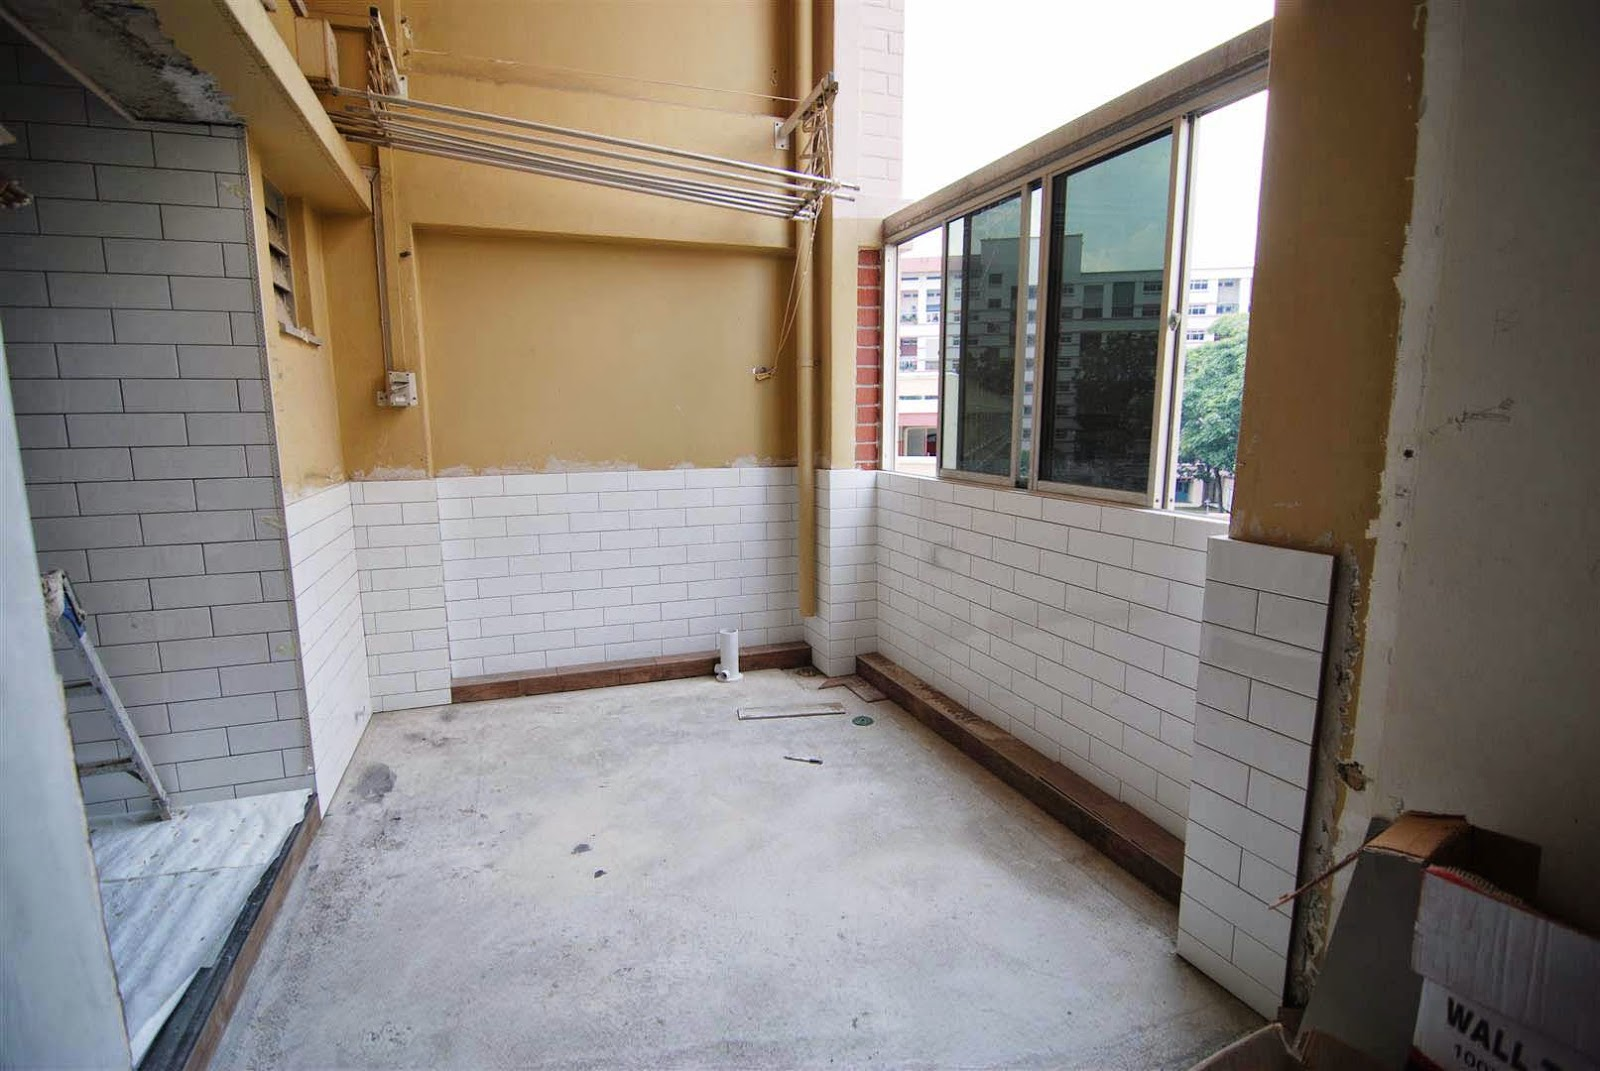 Butterpaperstudio reno cck maisonette tiling in progress for Balcony wall tiles